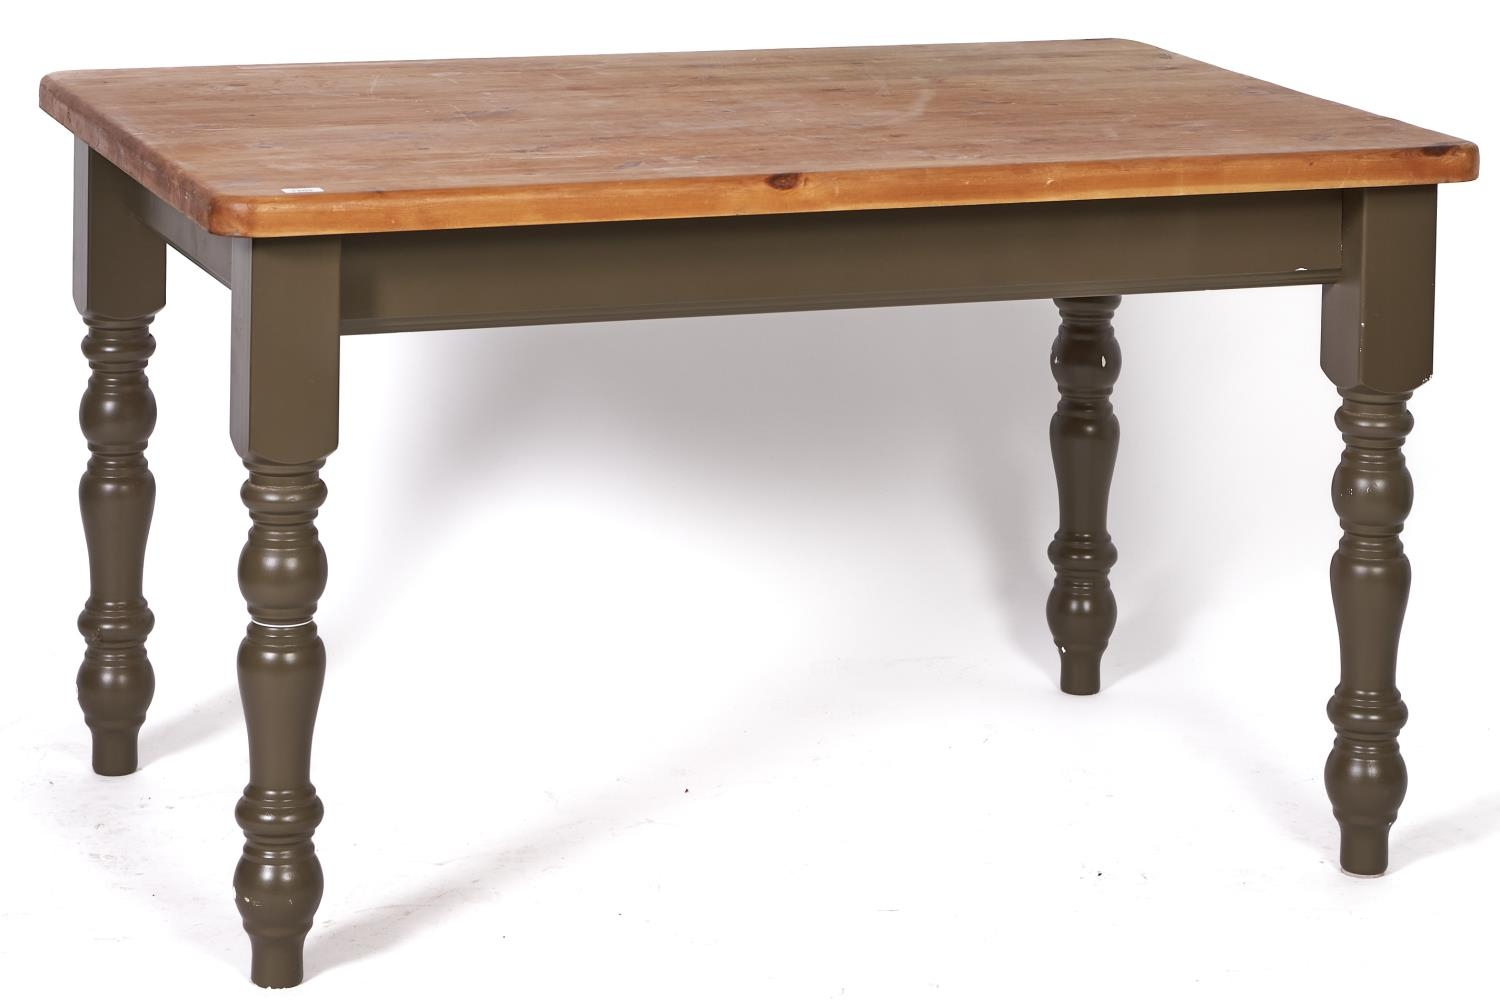 A reproduction pine topped kitchen table in Victorian style, modern, the stripped pine rectangular